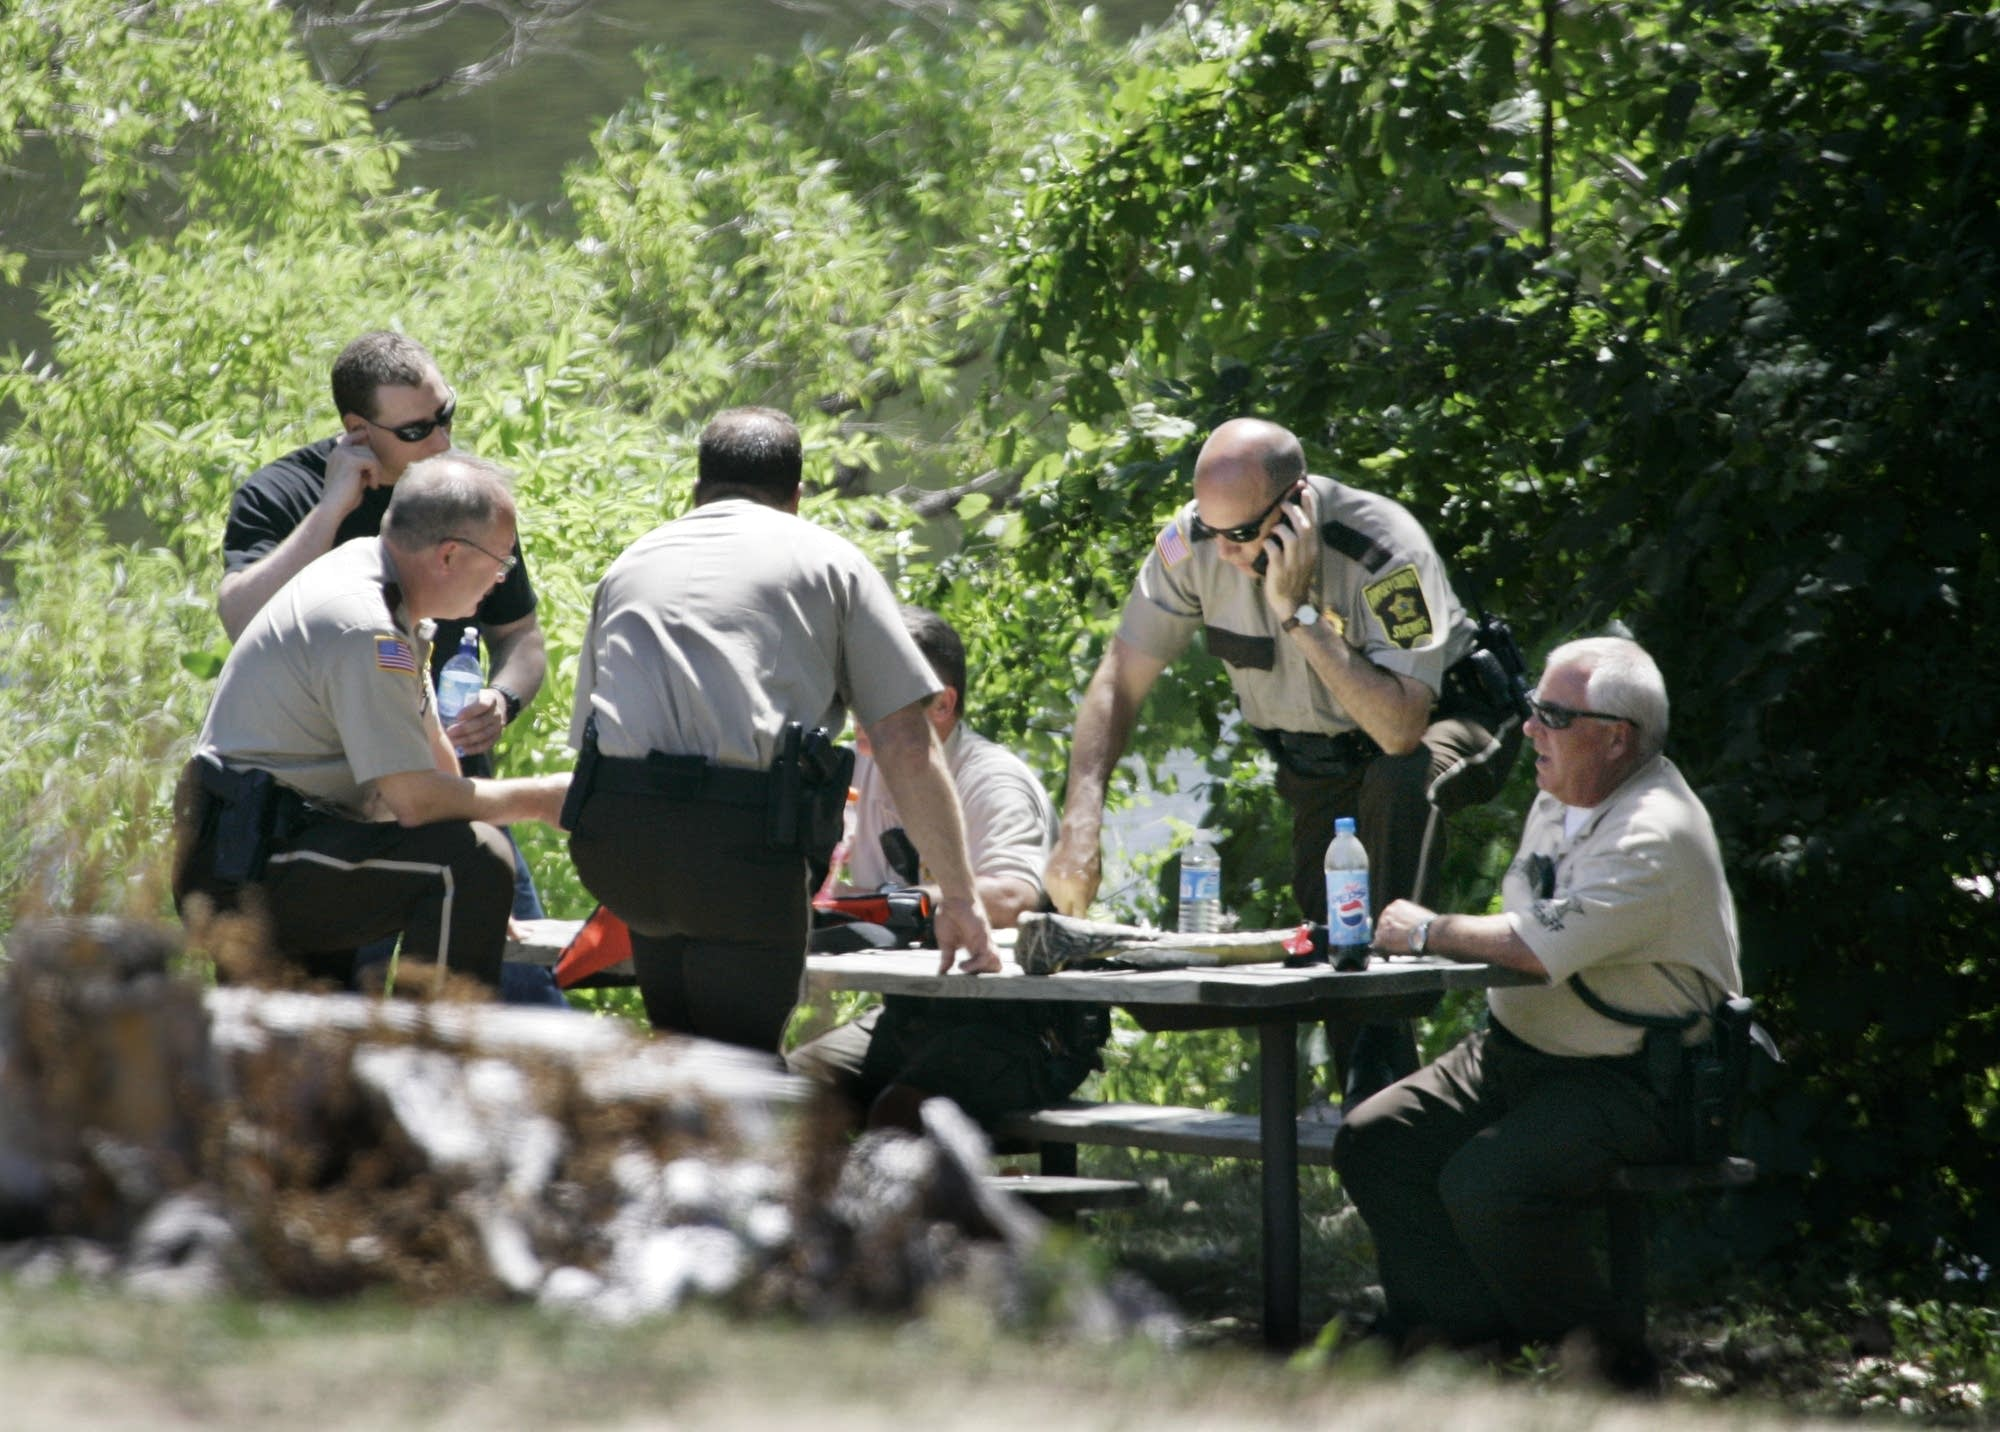 Local police officers meet over a picnic table.